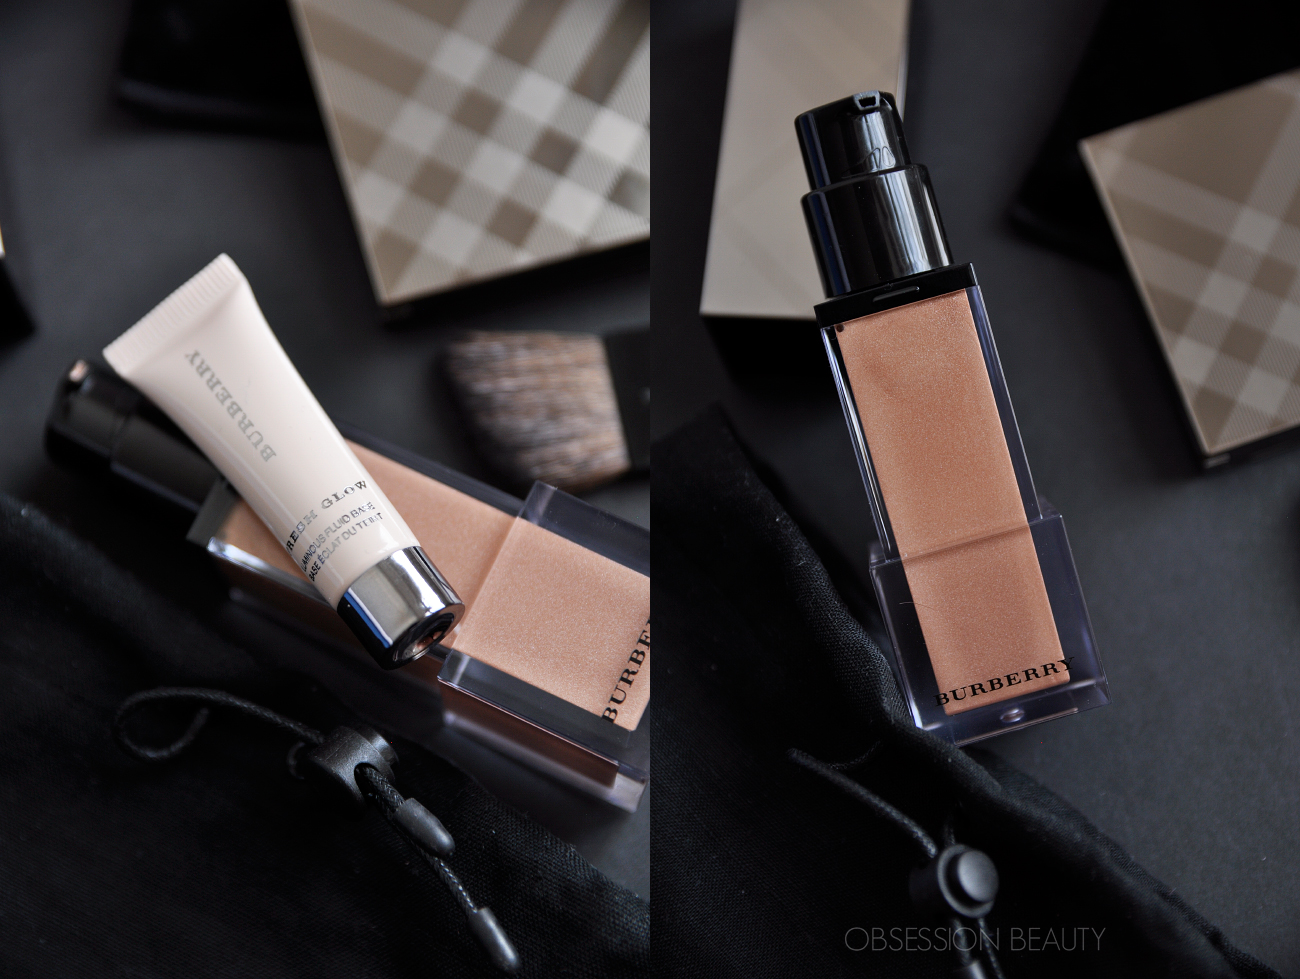 Burberry-Fresh-Glow-Luminous-Base7